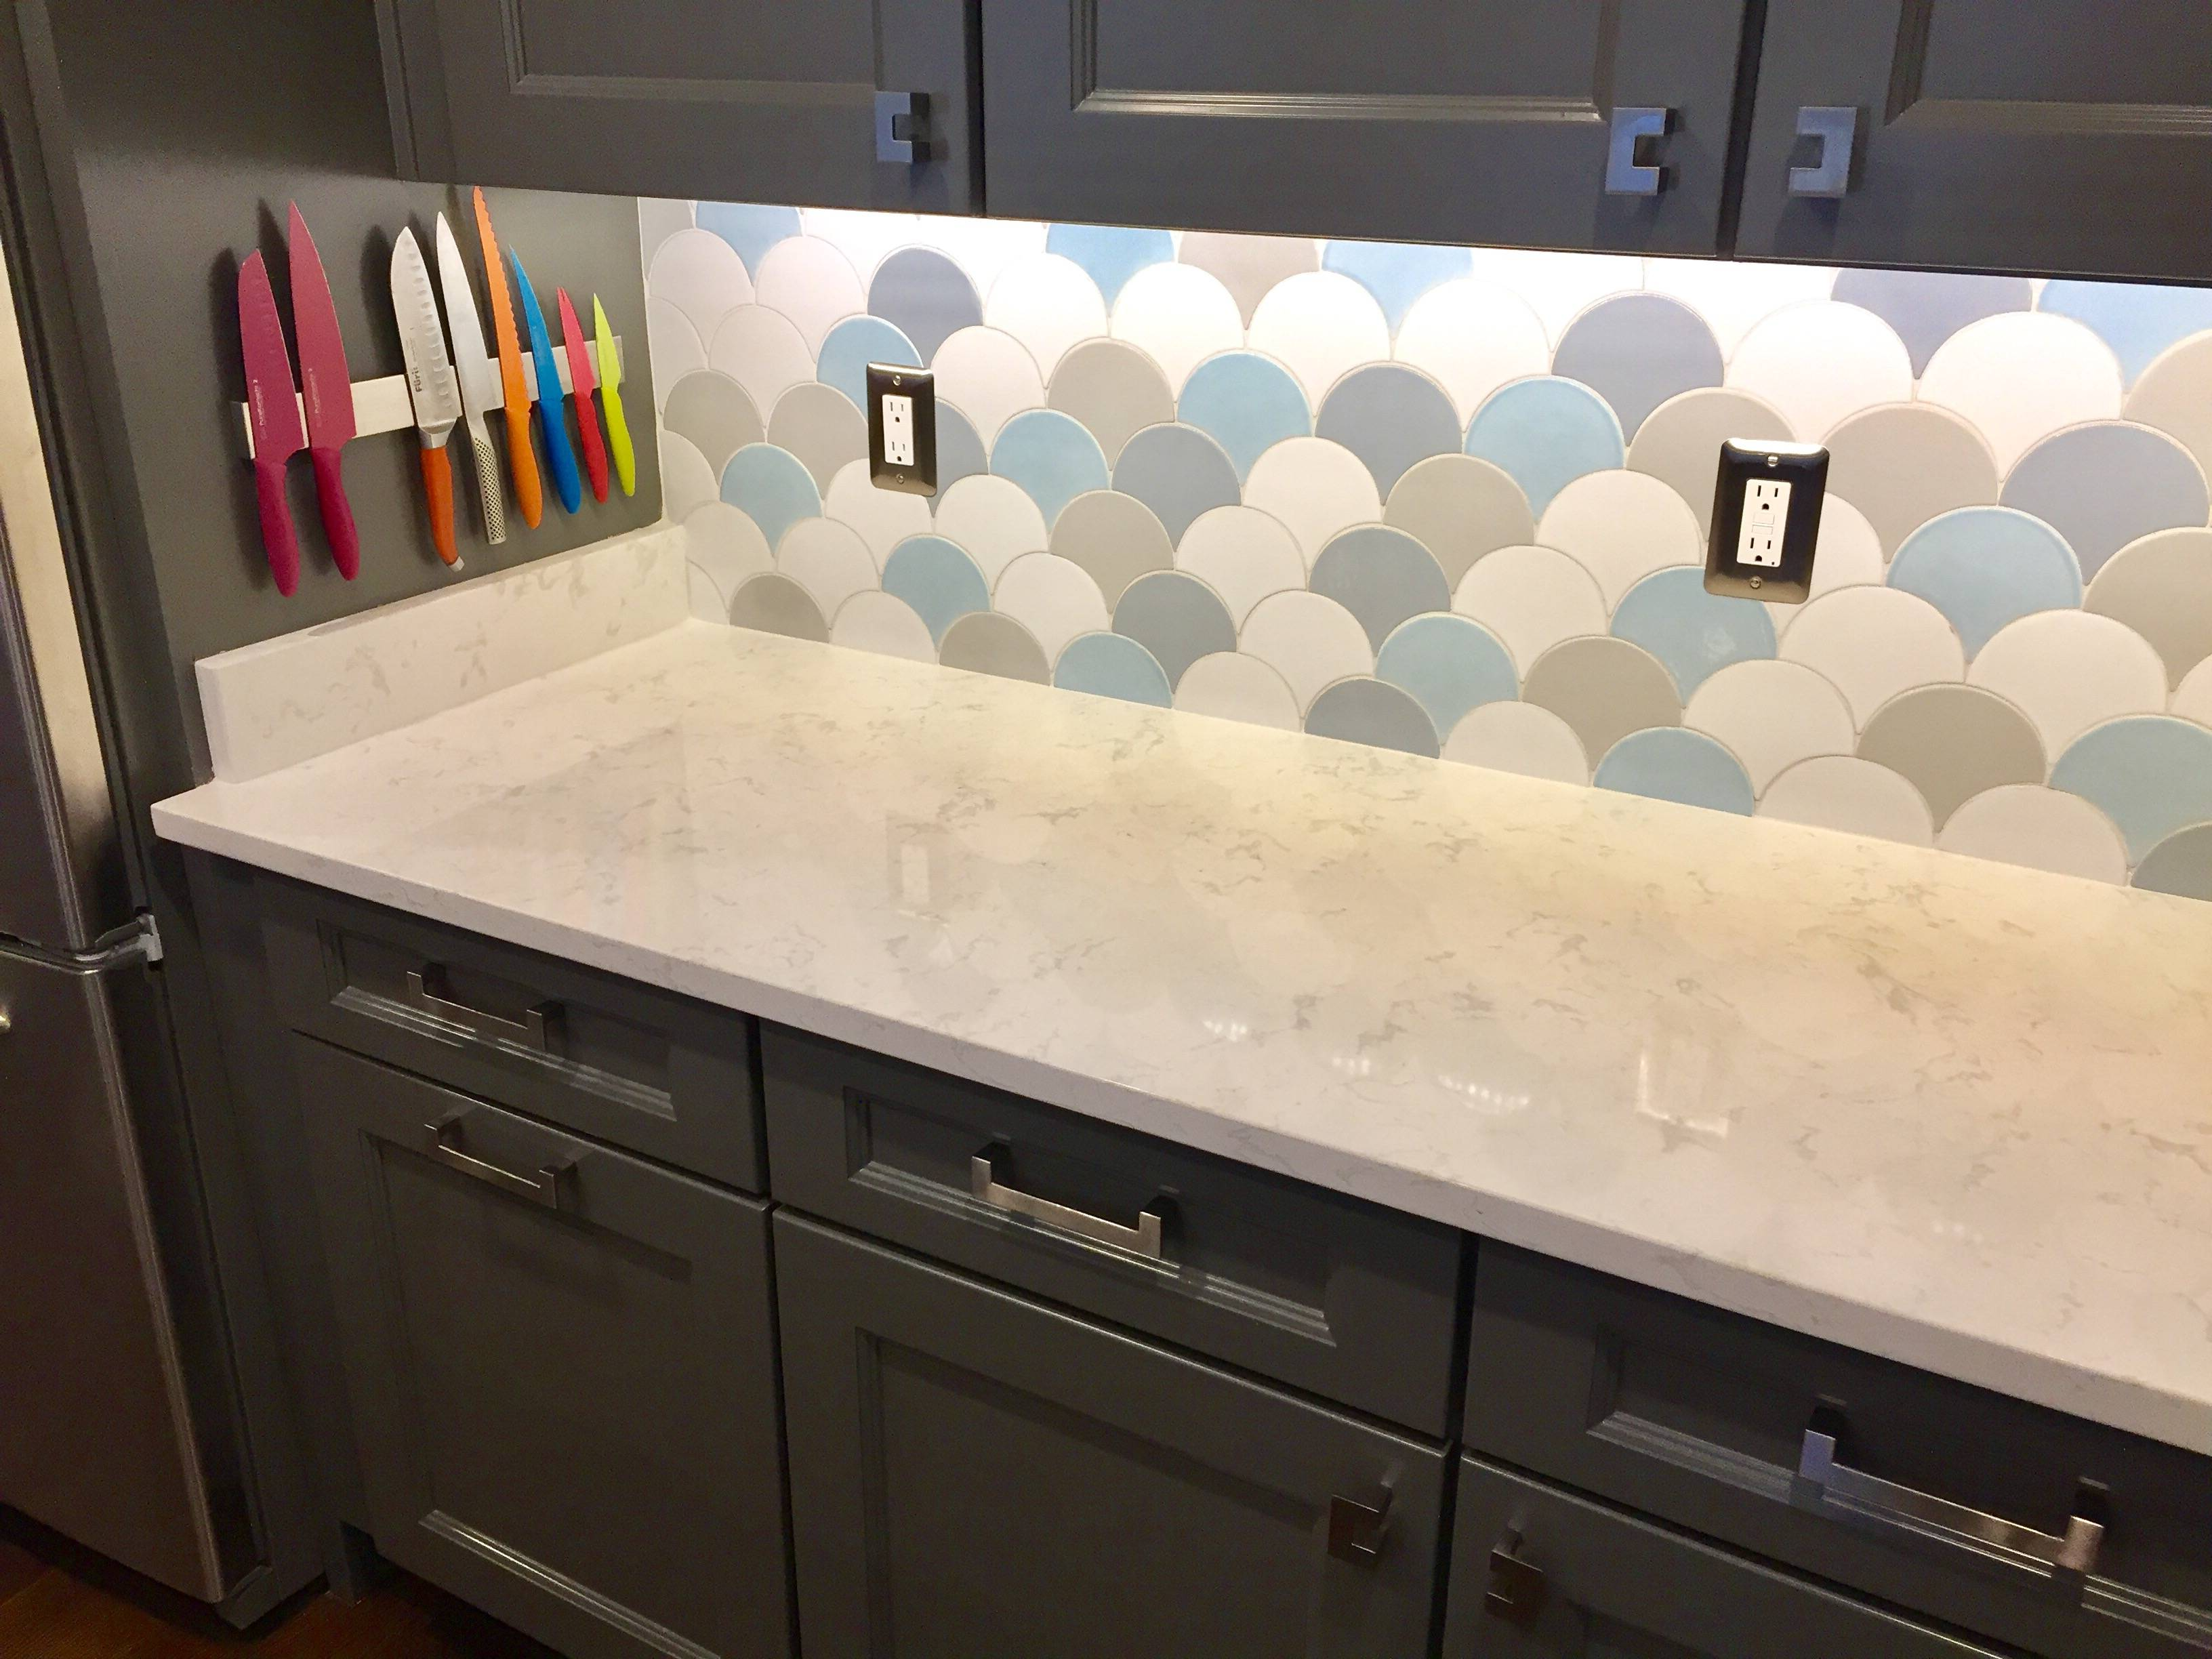 New Look to your kitchen